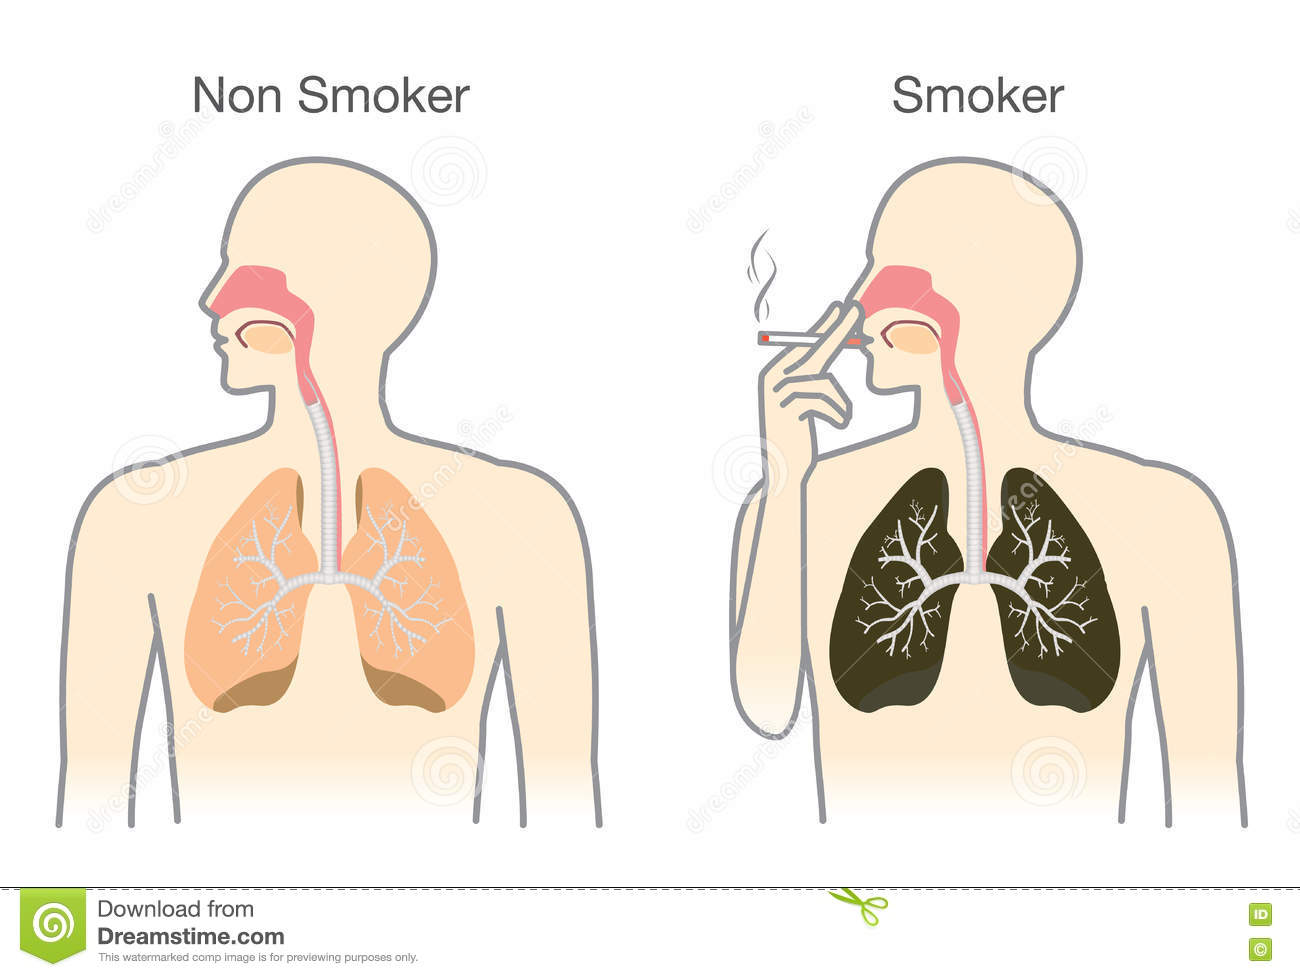 Comparison between smokers and non smokers essay